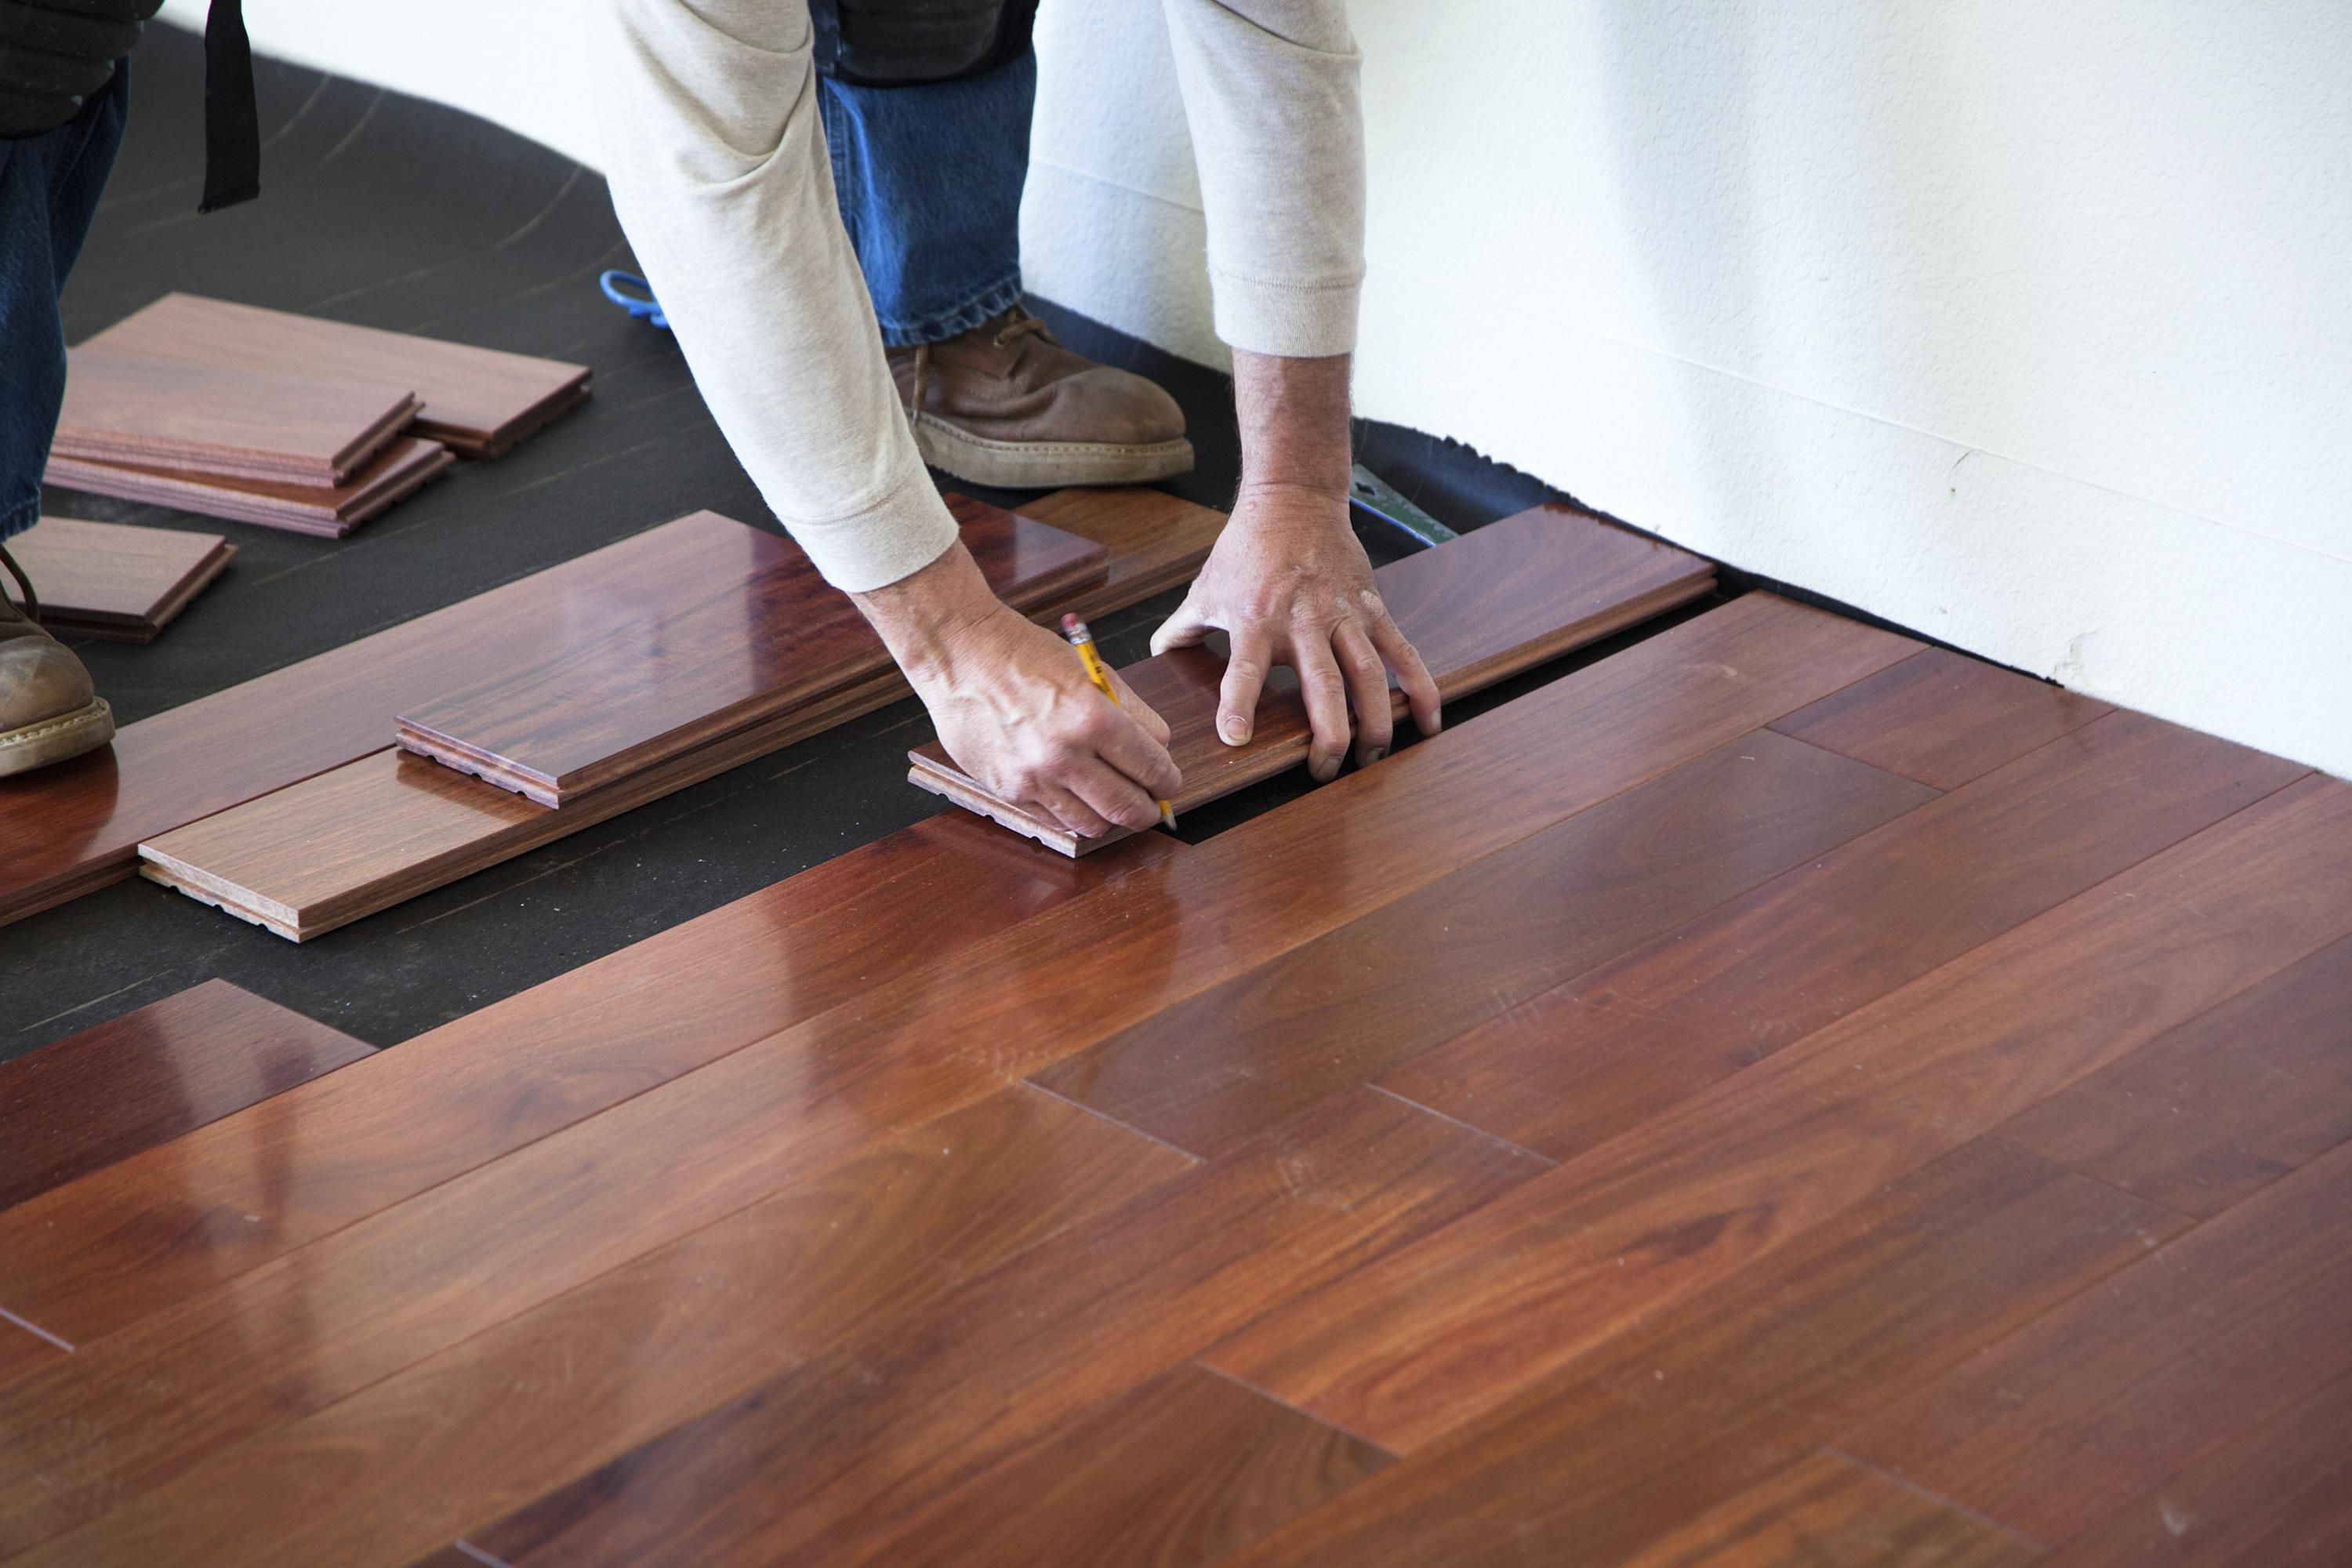 18 Stylish 1 1 4 Inch Hardwood Flooring 2021 free download 1 1 4 inch hardwood flooring of this is how much hardwood flooring to order for 170040982 56a49f213df78cf772834e21